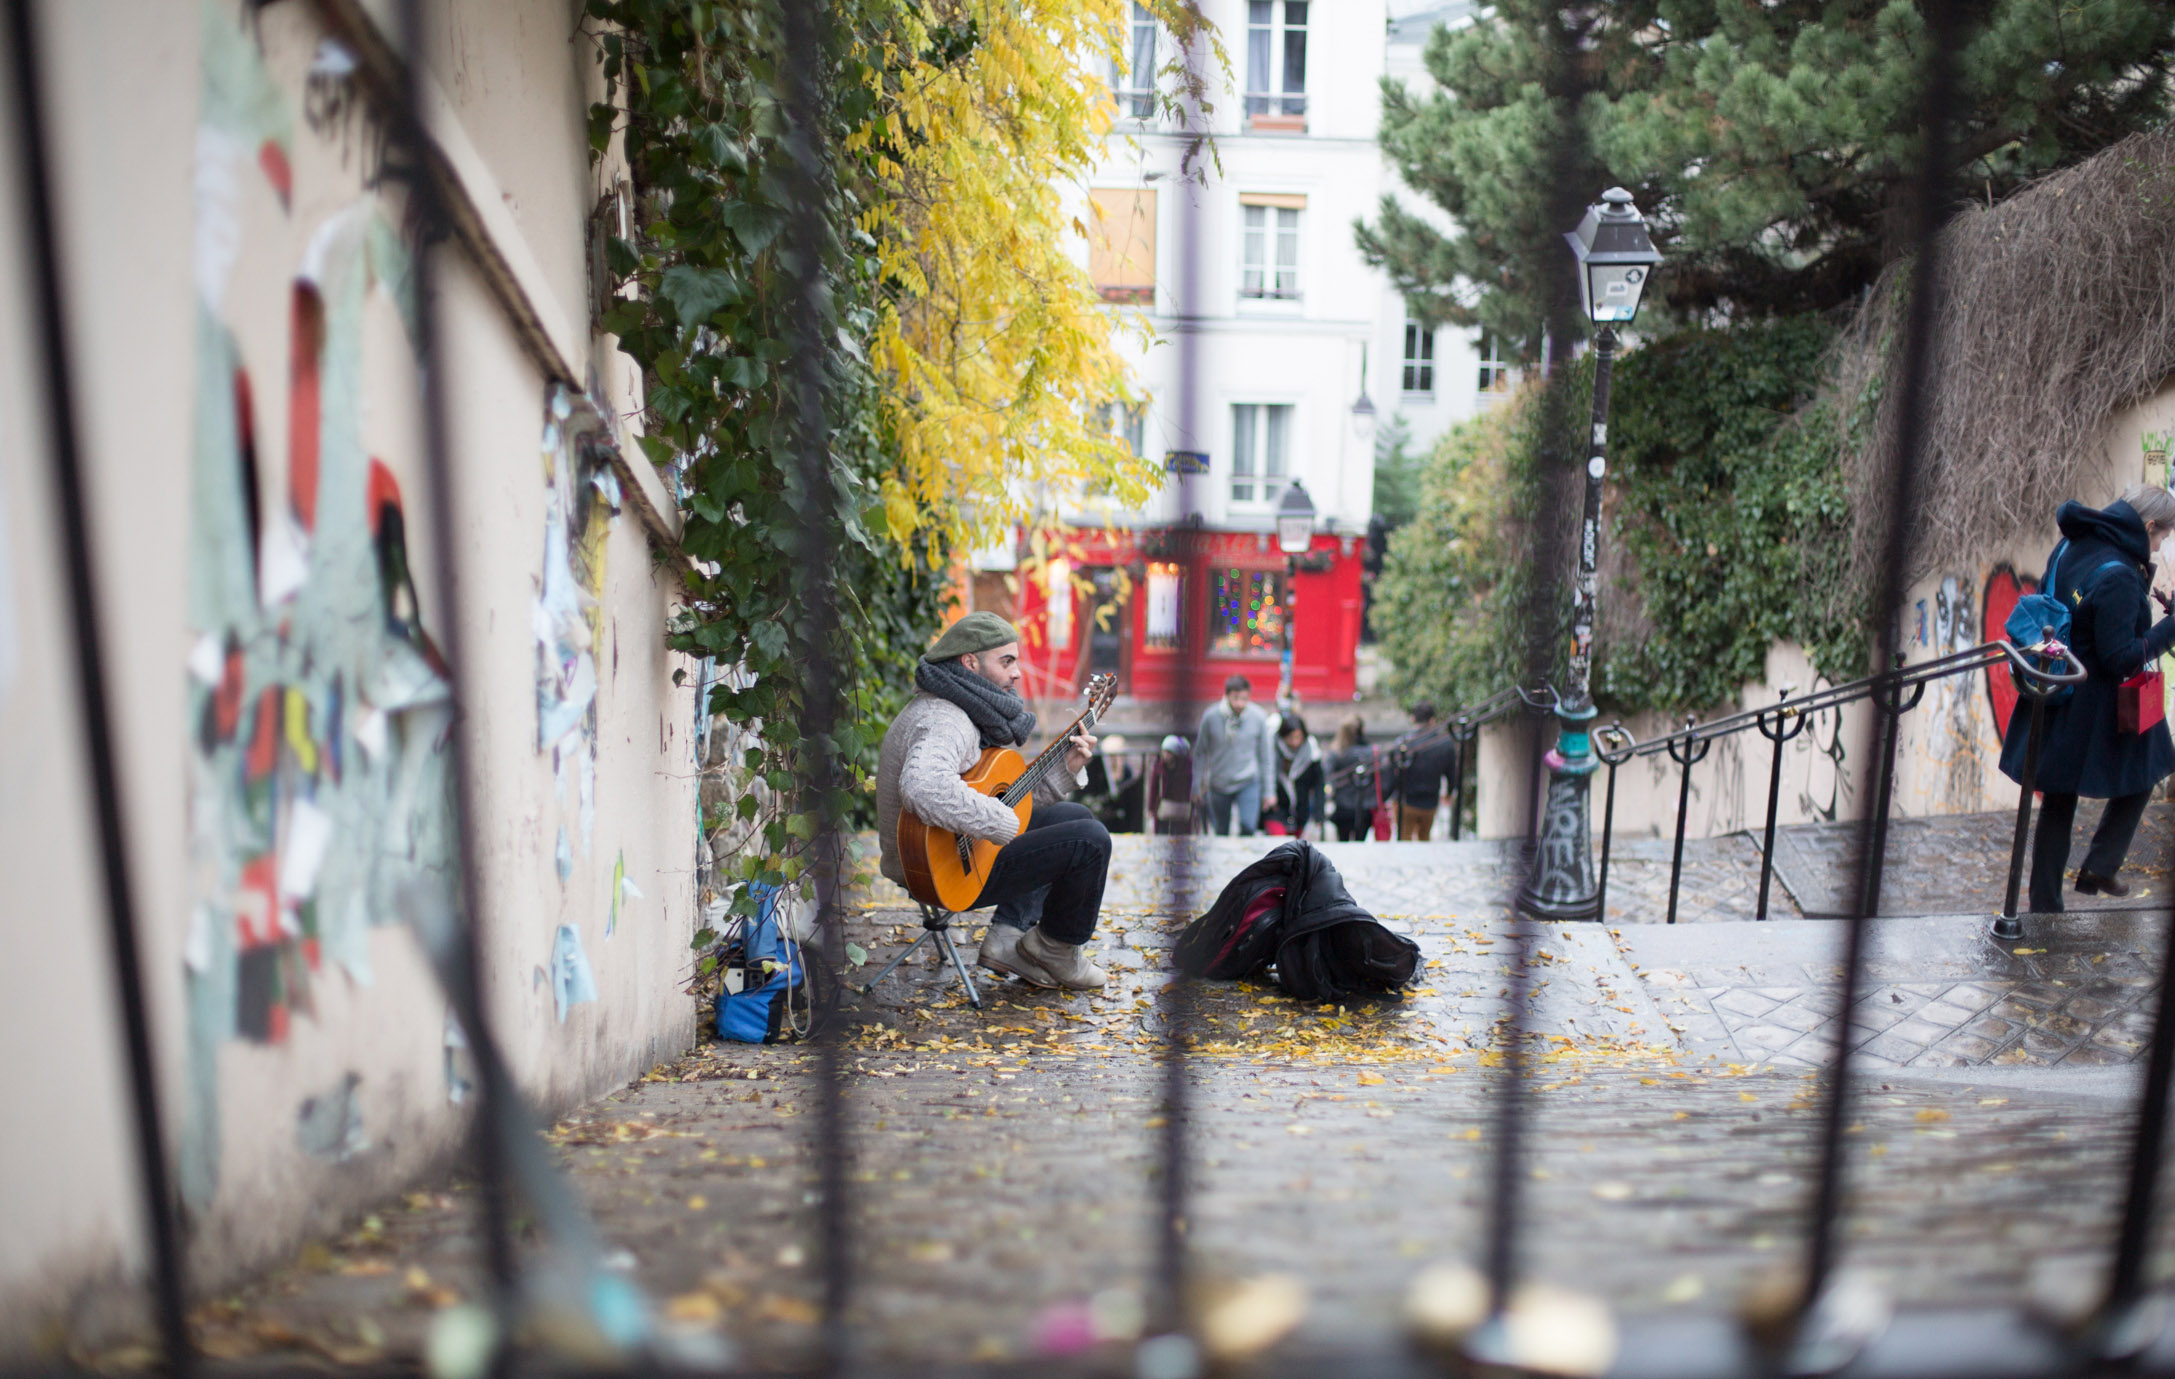 SNAPSHOTS OF MONTMARTRE - 22 DEC